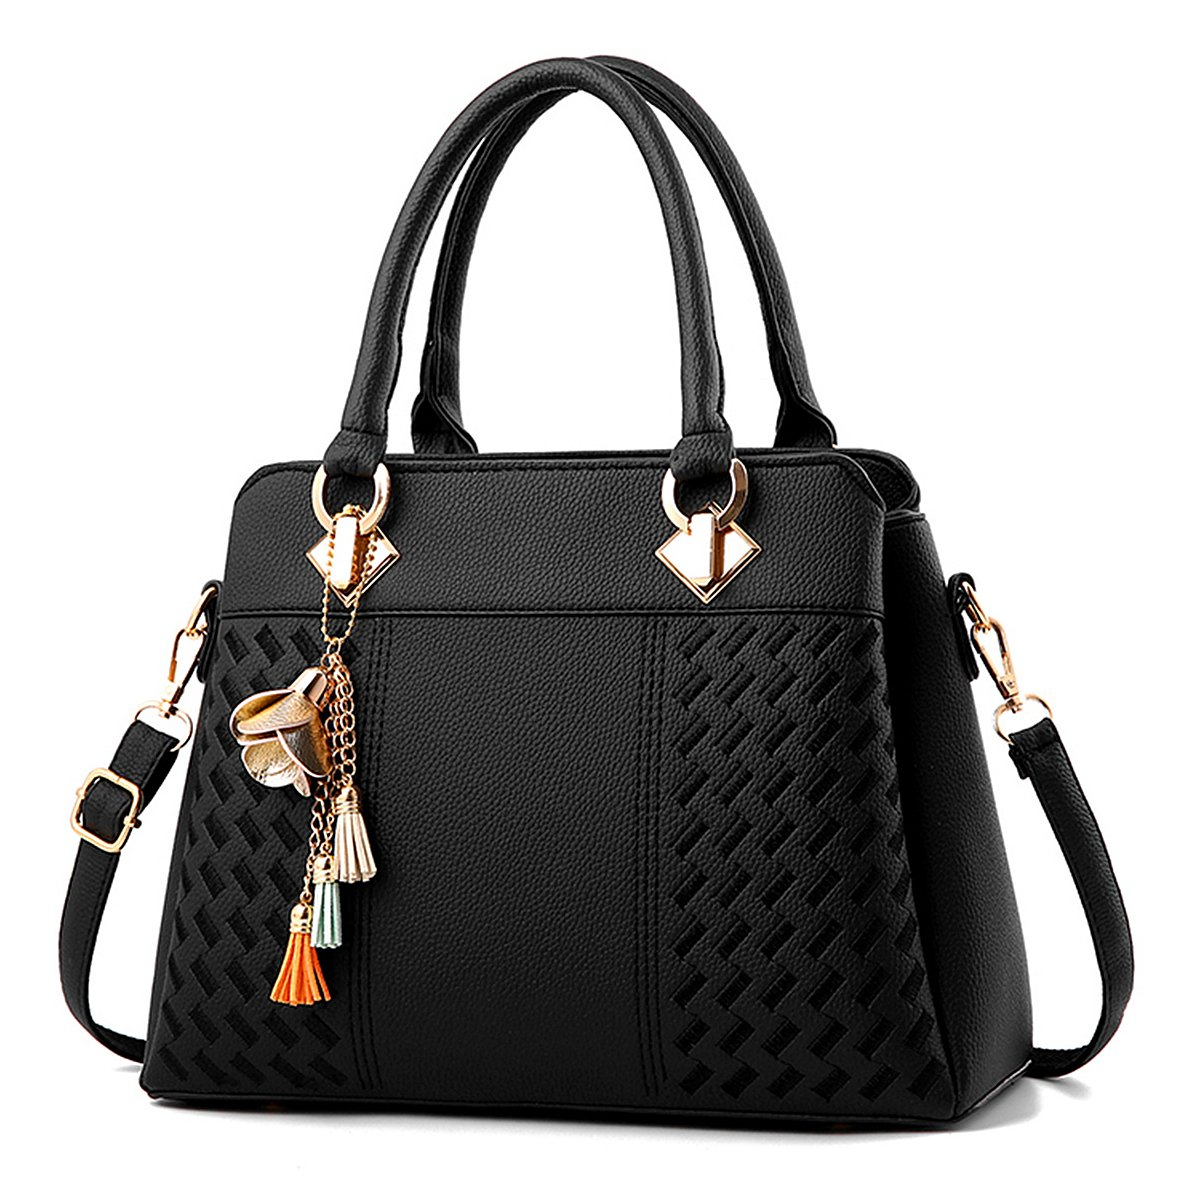 Amazon.com  Charmore Womens Handbags Ladies Purses Satchel Shoulder Bags  Tote Bag  Shoes 43868d84dc80d